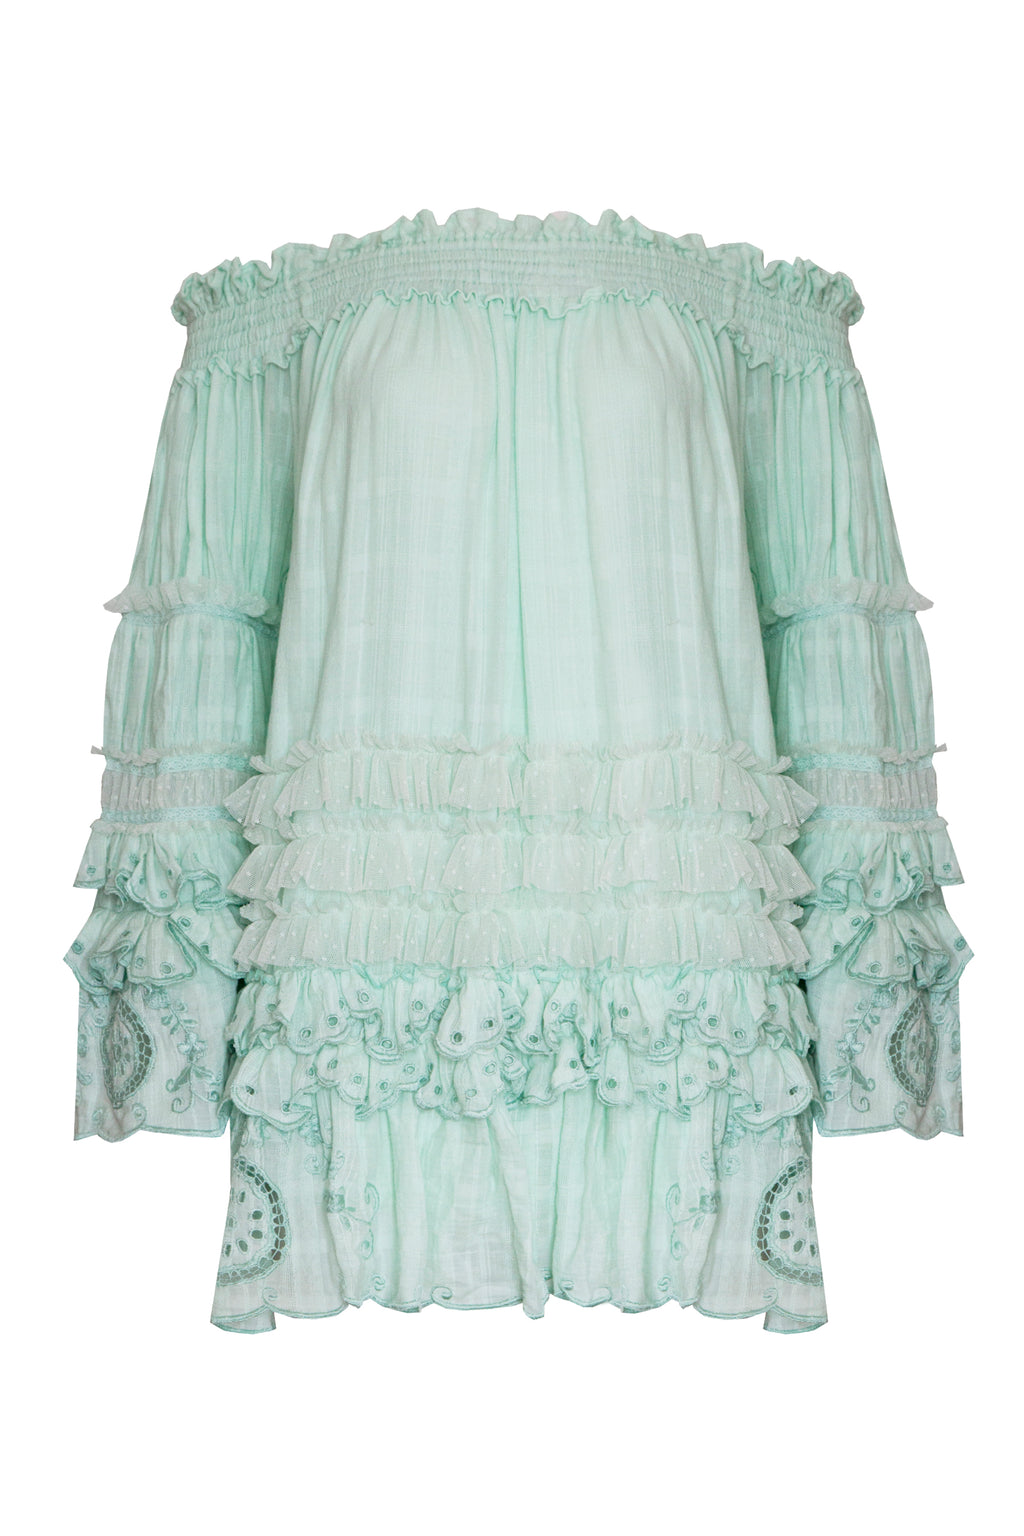 Ophelia - Swing Tunic in Mint